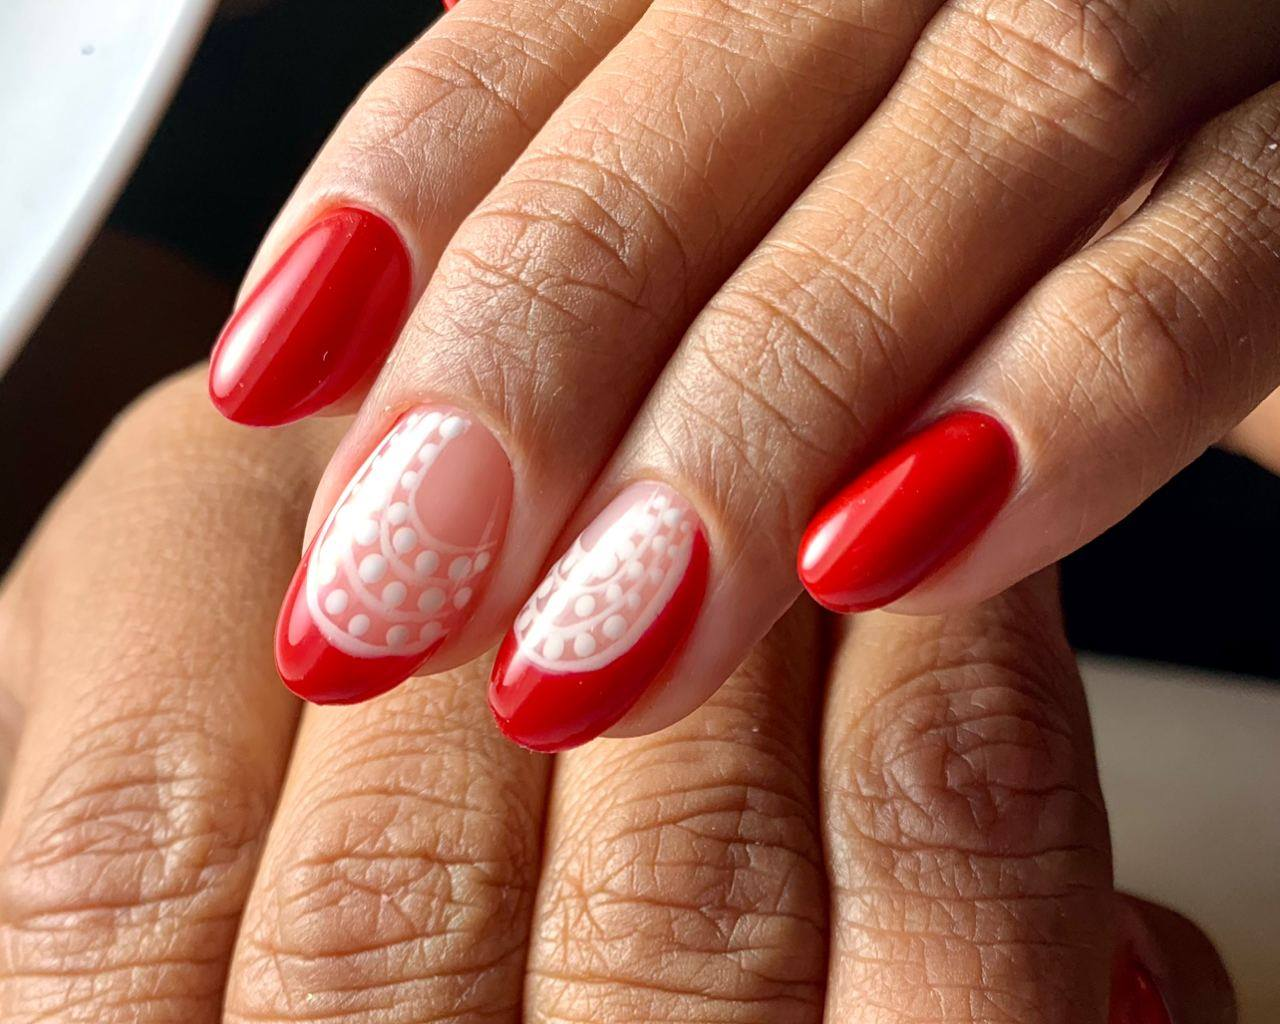 Red Nails with White Design